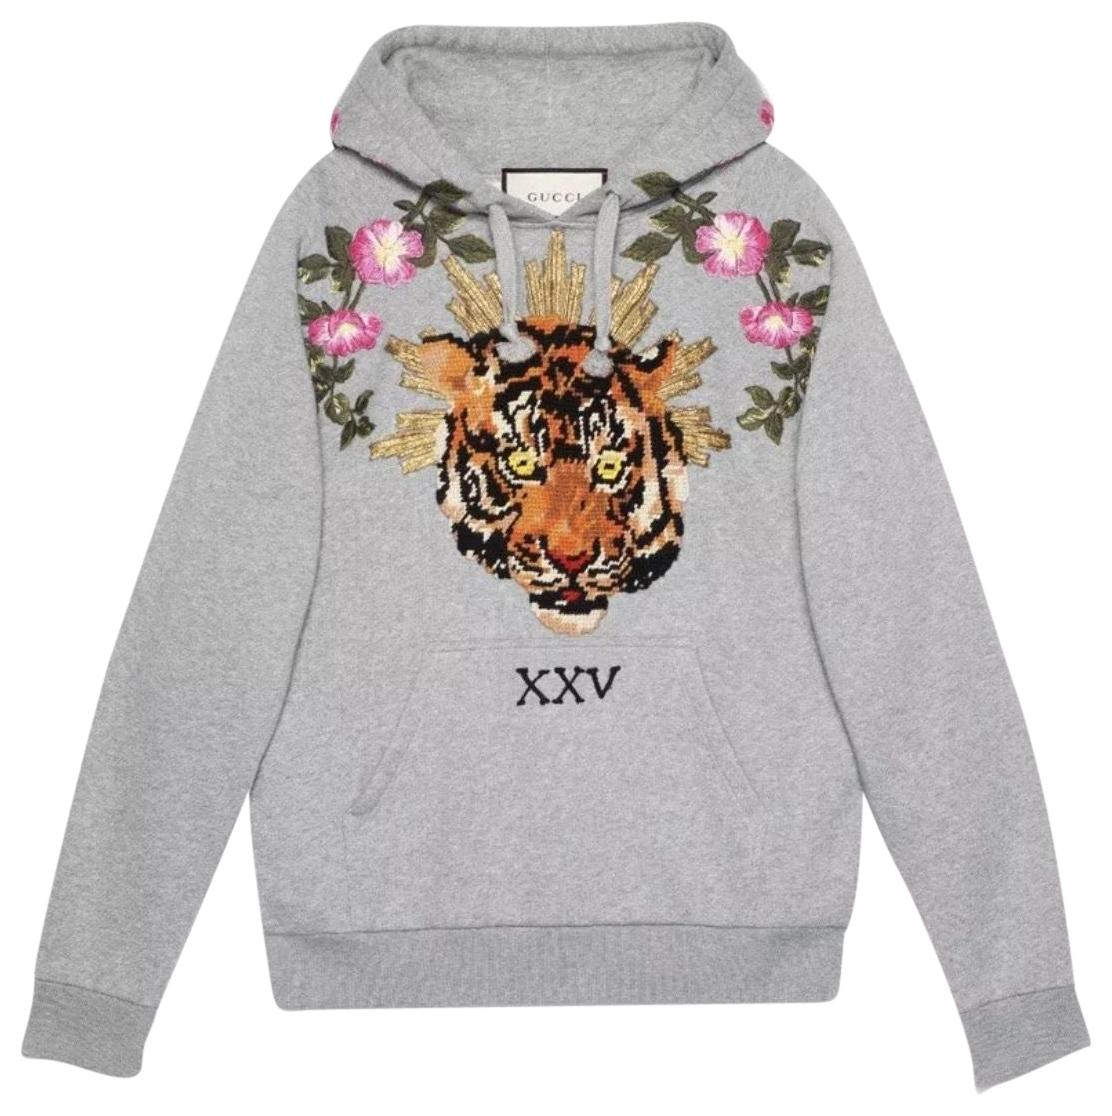 c806766ac700b Gucci Grey Tiger Embroidered Sweatshirt hoodie Size 12 (L) Tradesy